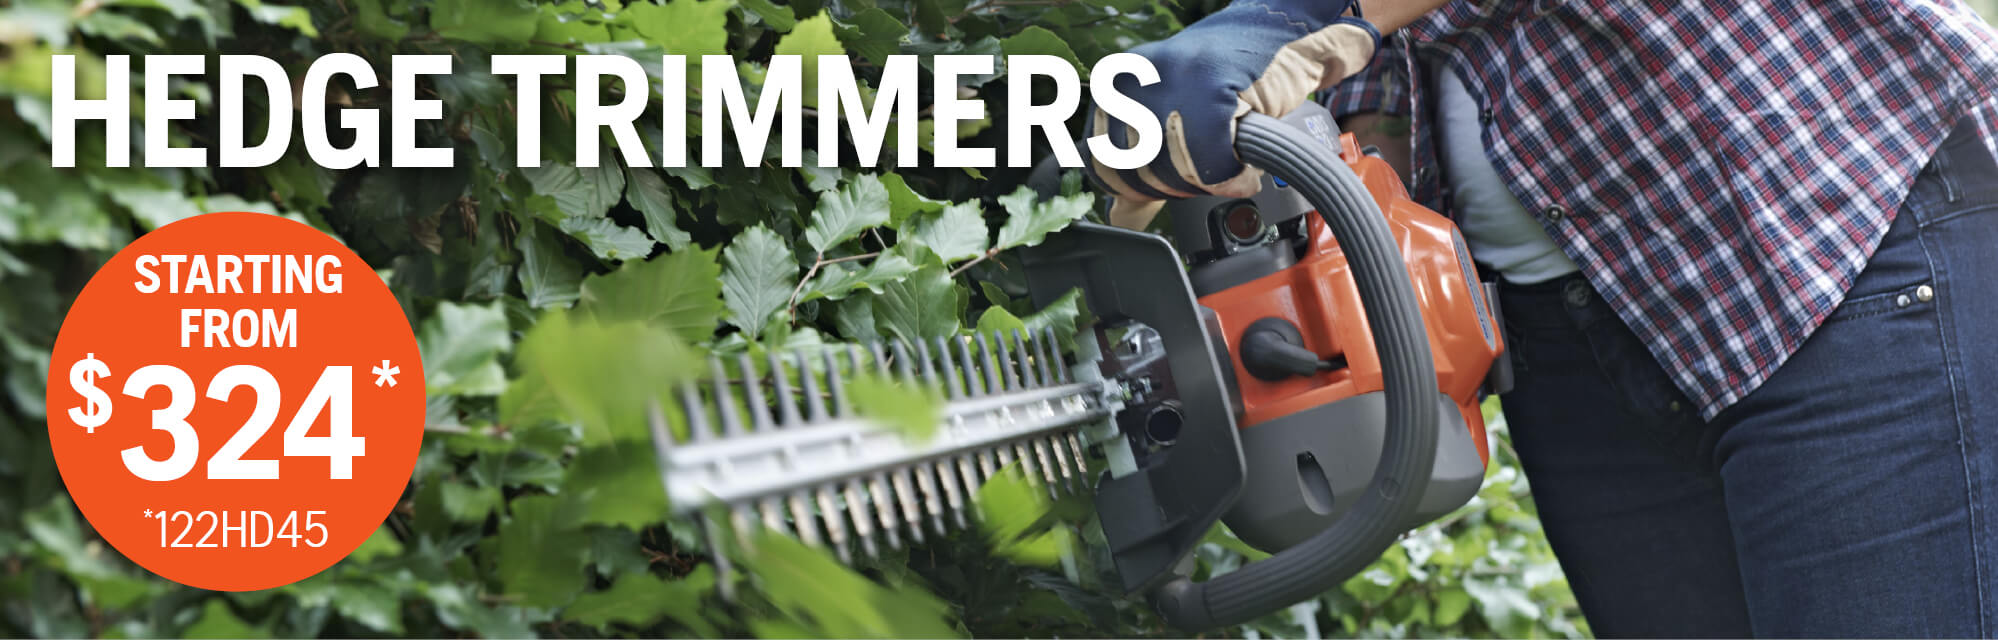 Spring Hedge Trimmers